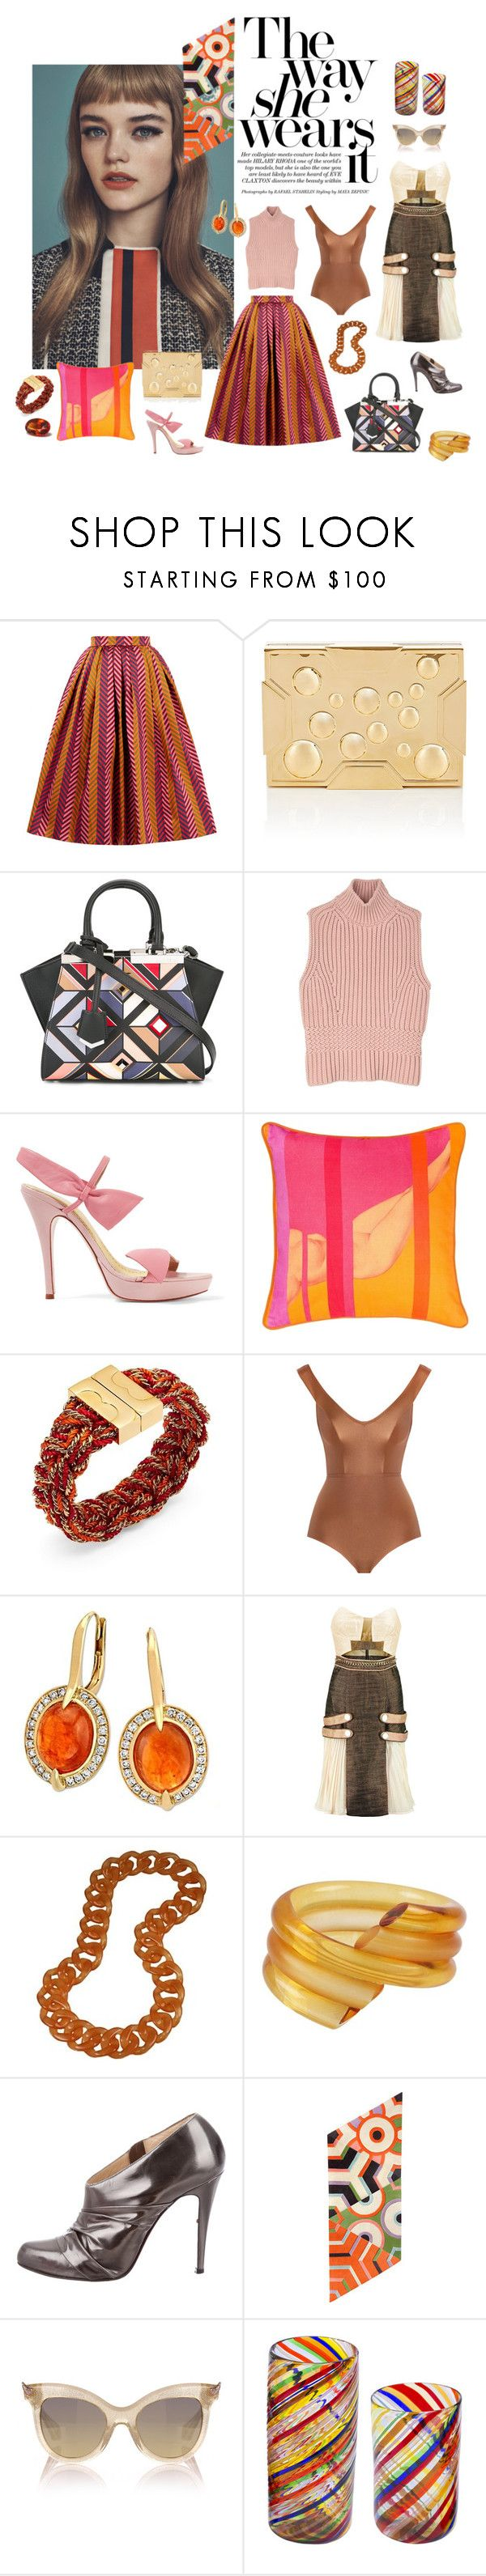 """""""The way she wears it"""" by sarahhughes-net on Polyvore featuring House of Holland, Lee Savage, Fendi, Diesel Black Gold, RED Valentino, BIVAIN, Tory Burch, Zimmermann, self-portrait and Judith Hendler"""